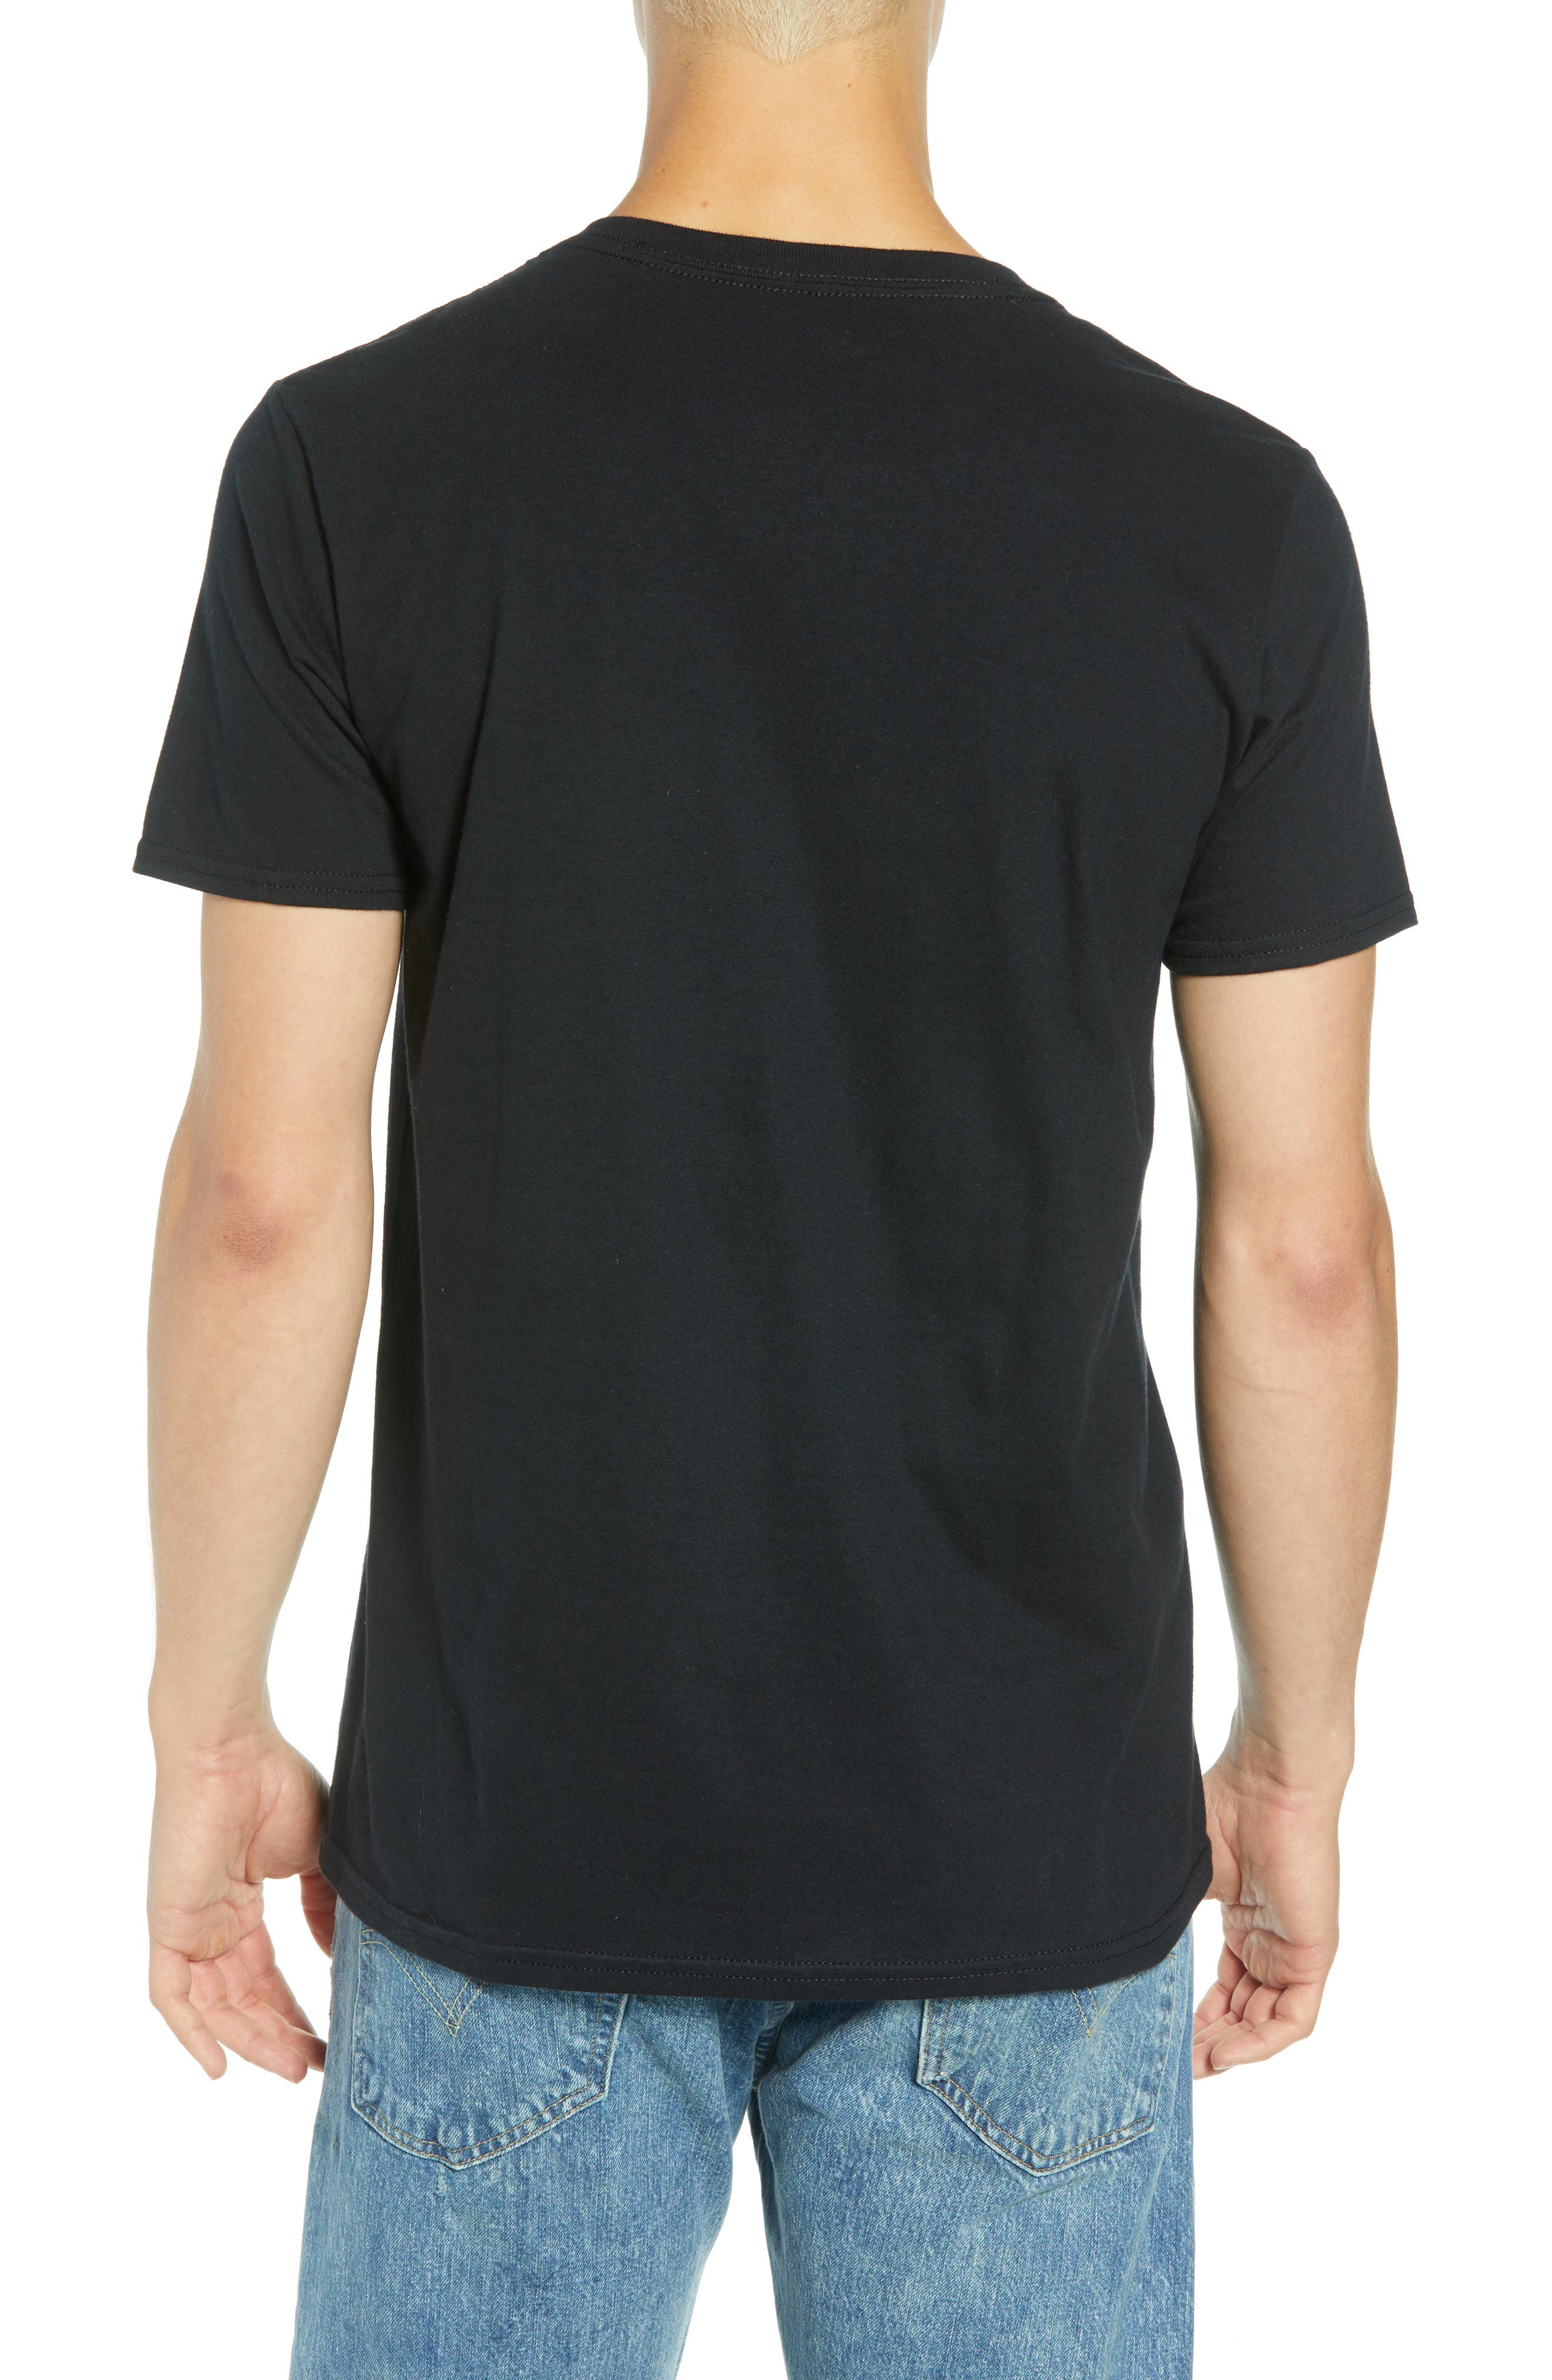 Goodfeathers T-Shirt,                             Alternate thumbnail 2, color,                             BLACK GOODFEATHER